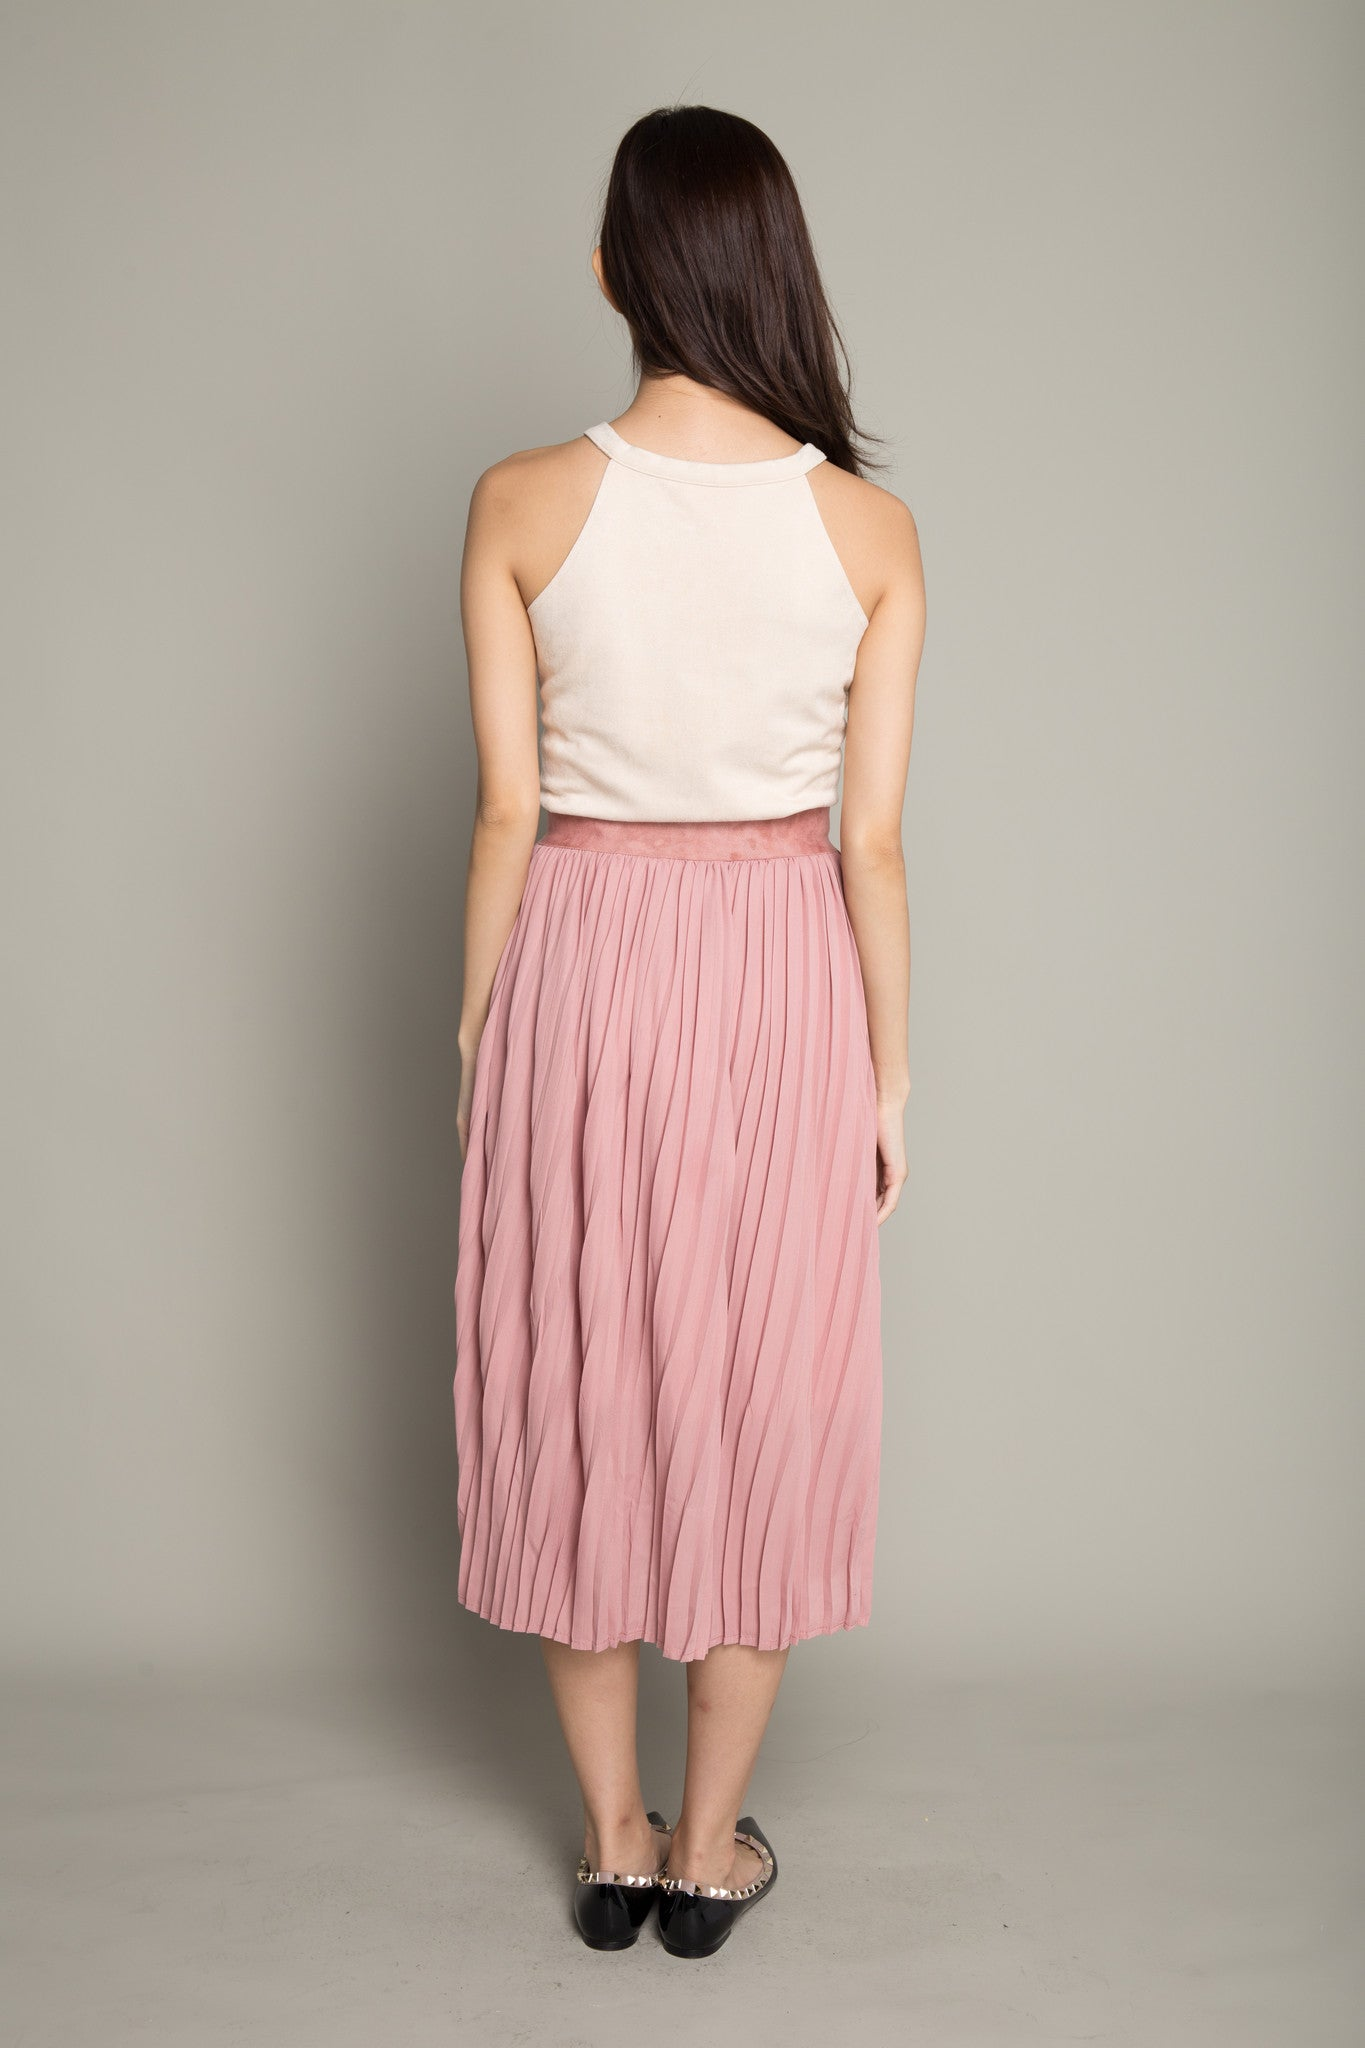 Pleated Twirl Skirt in Blush Pink